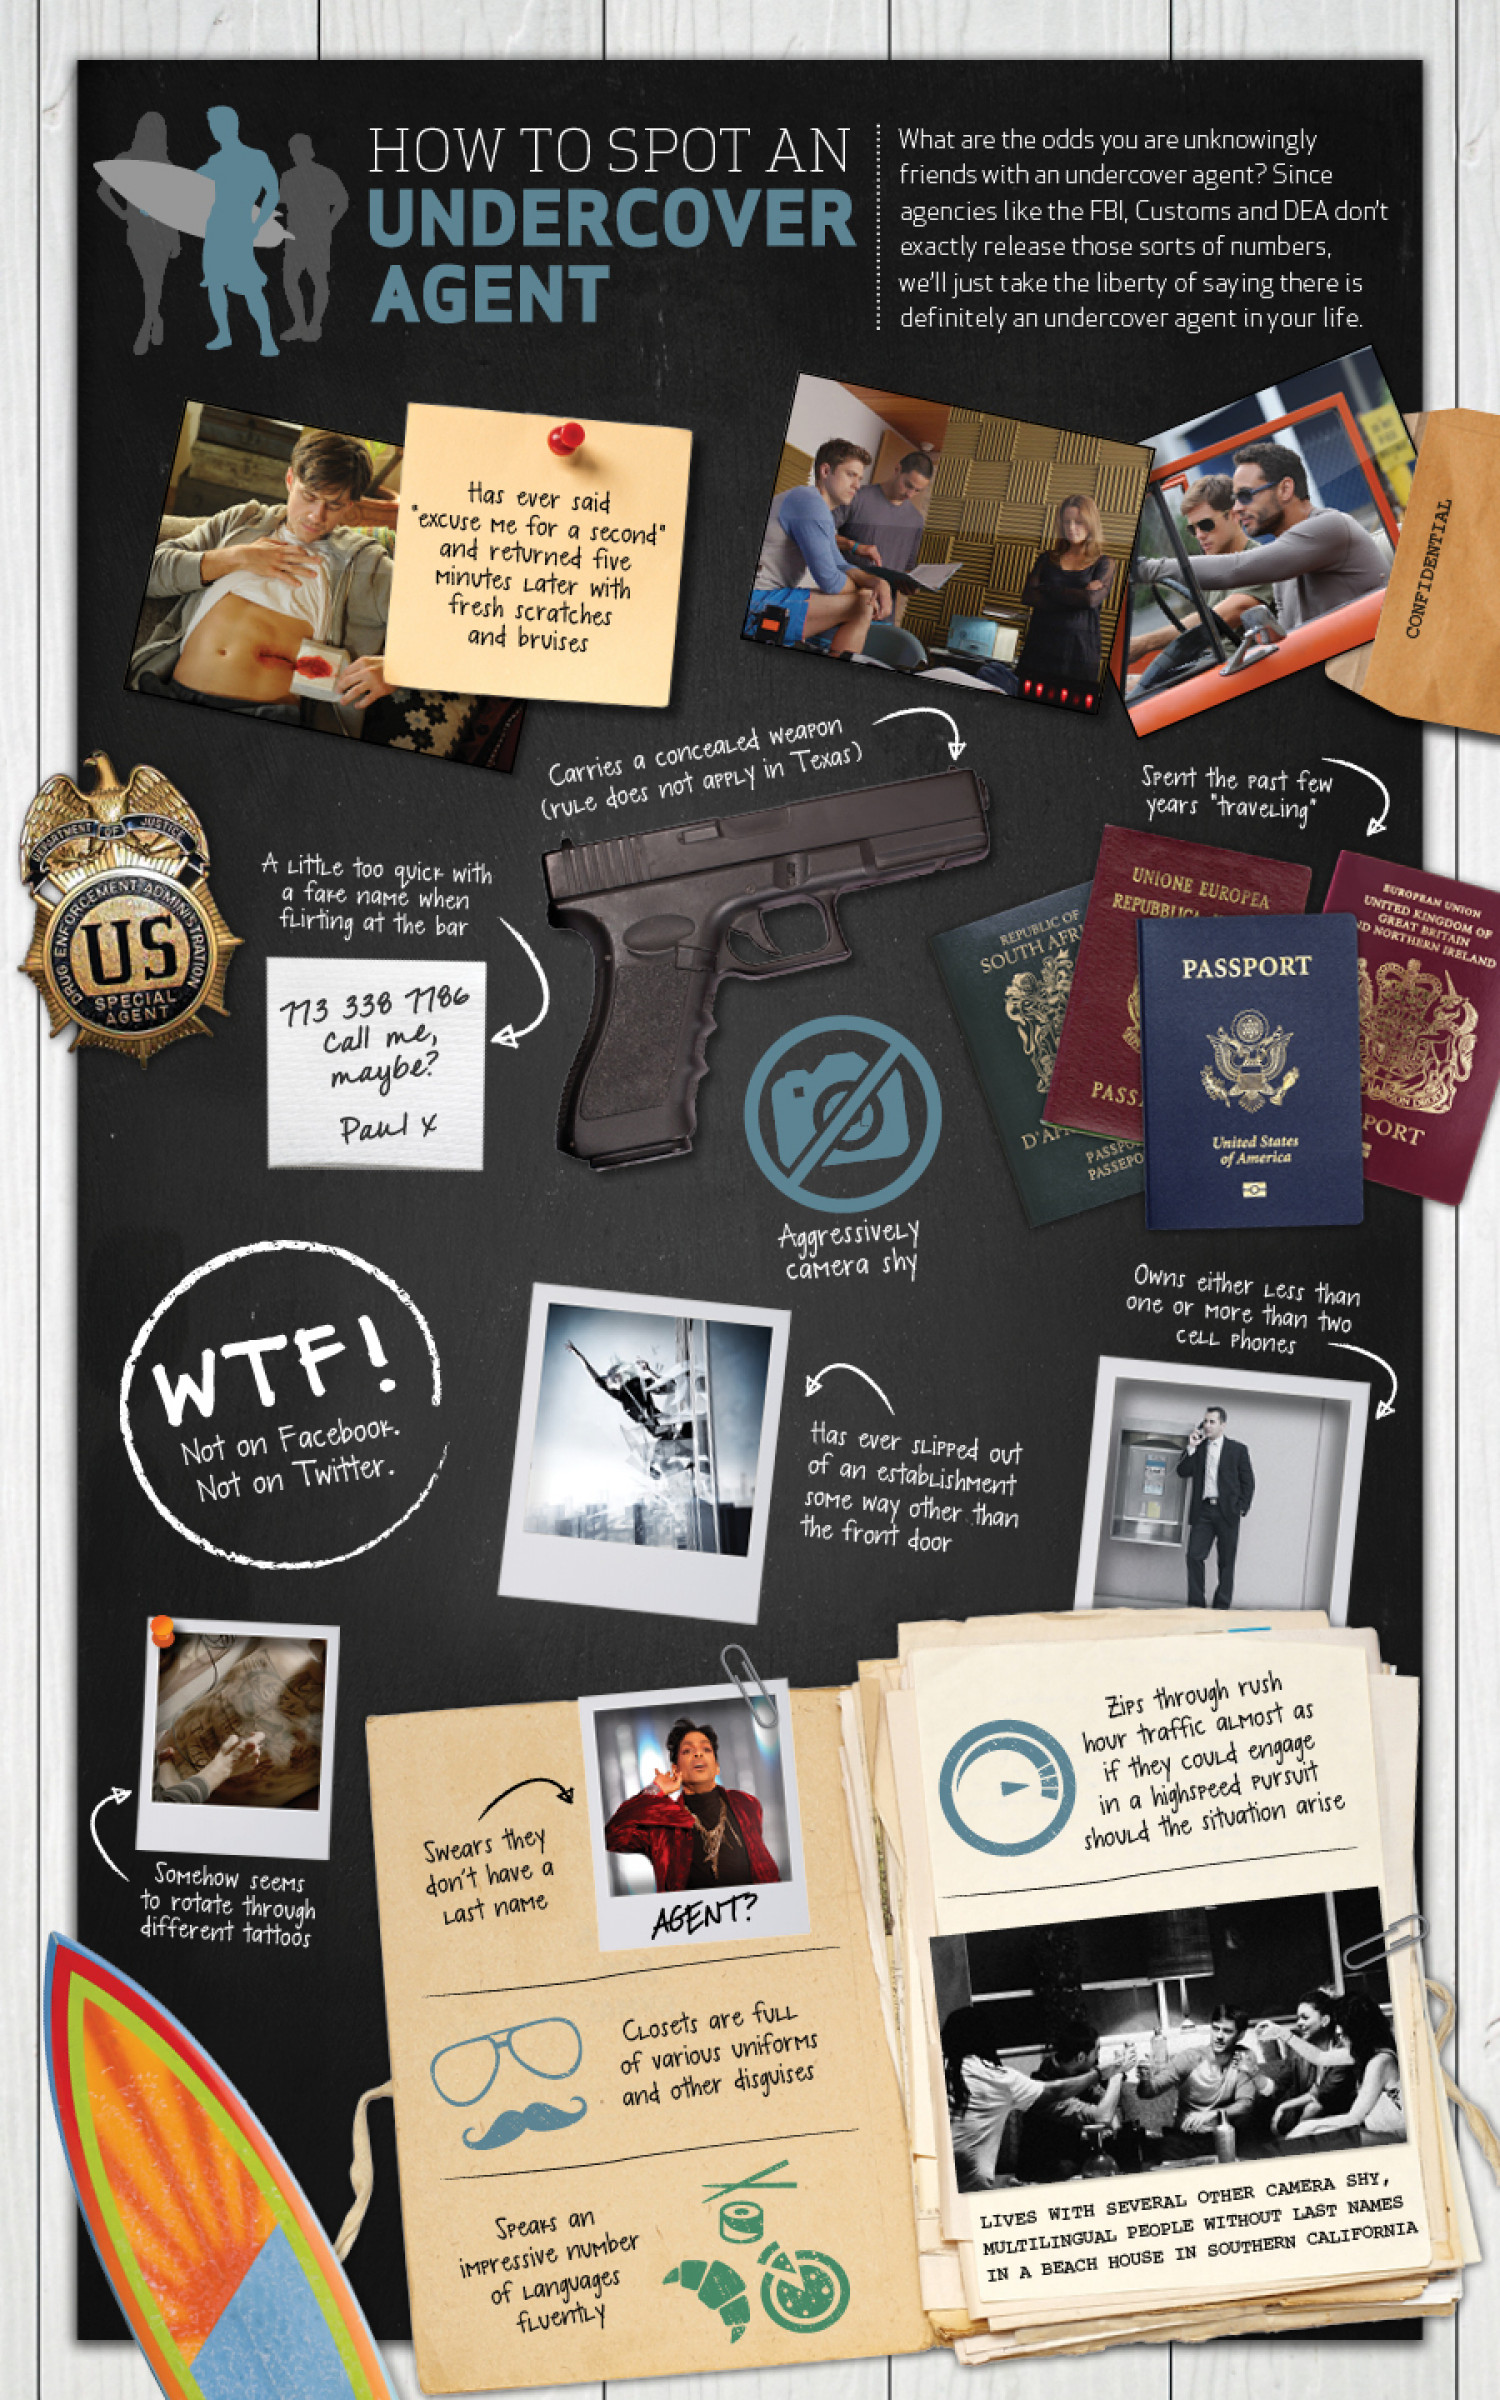 How to Spot an Undercover Agent Infographic